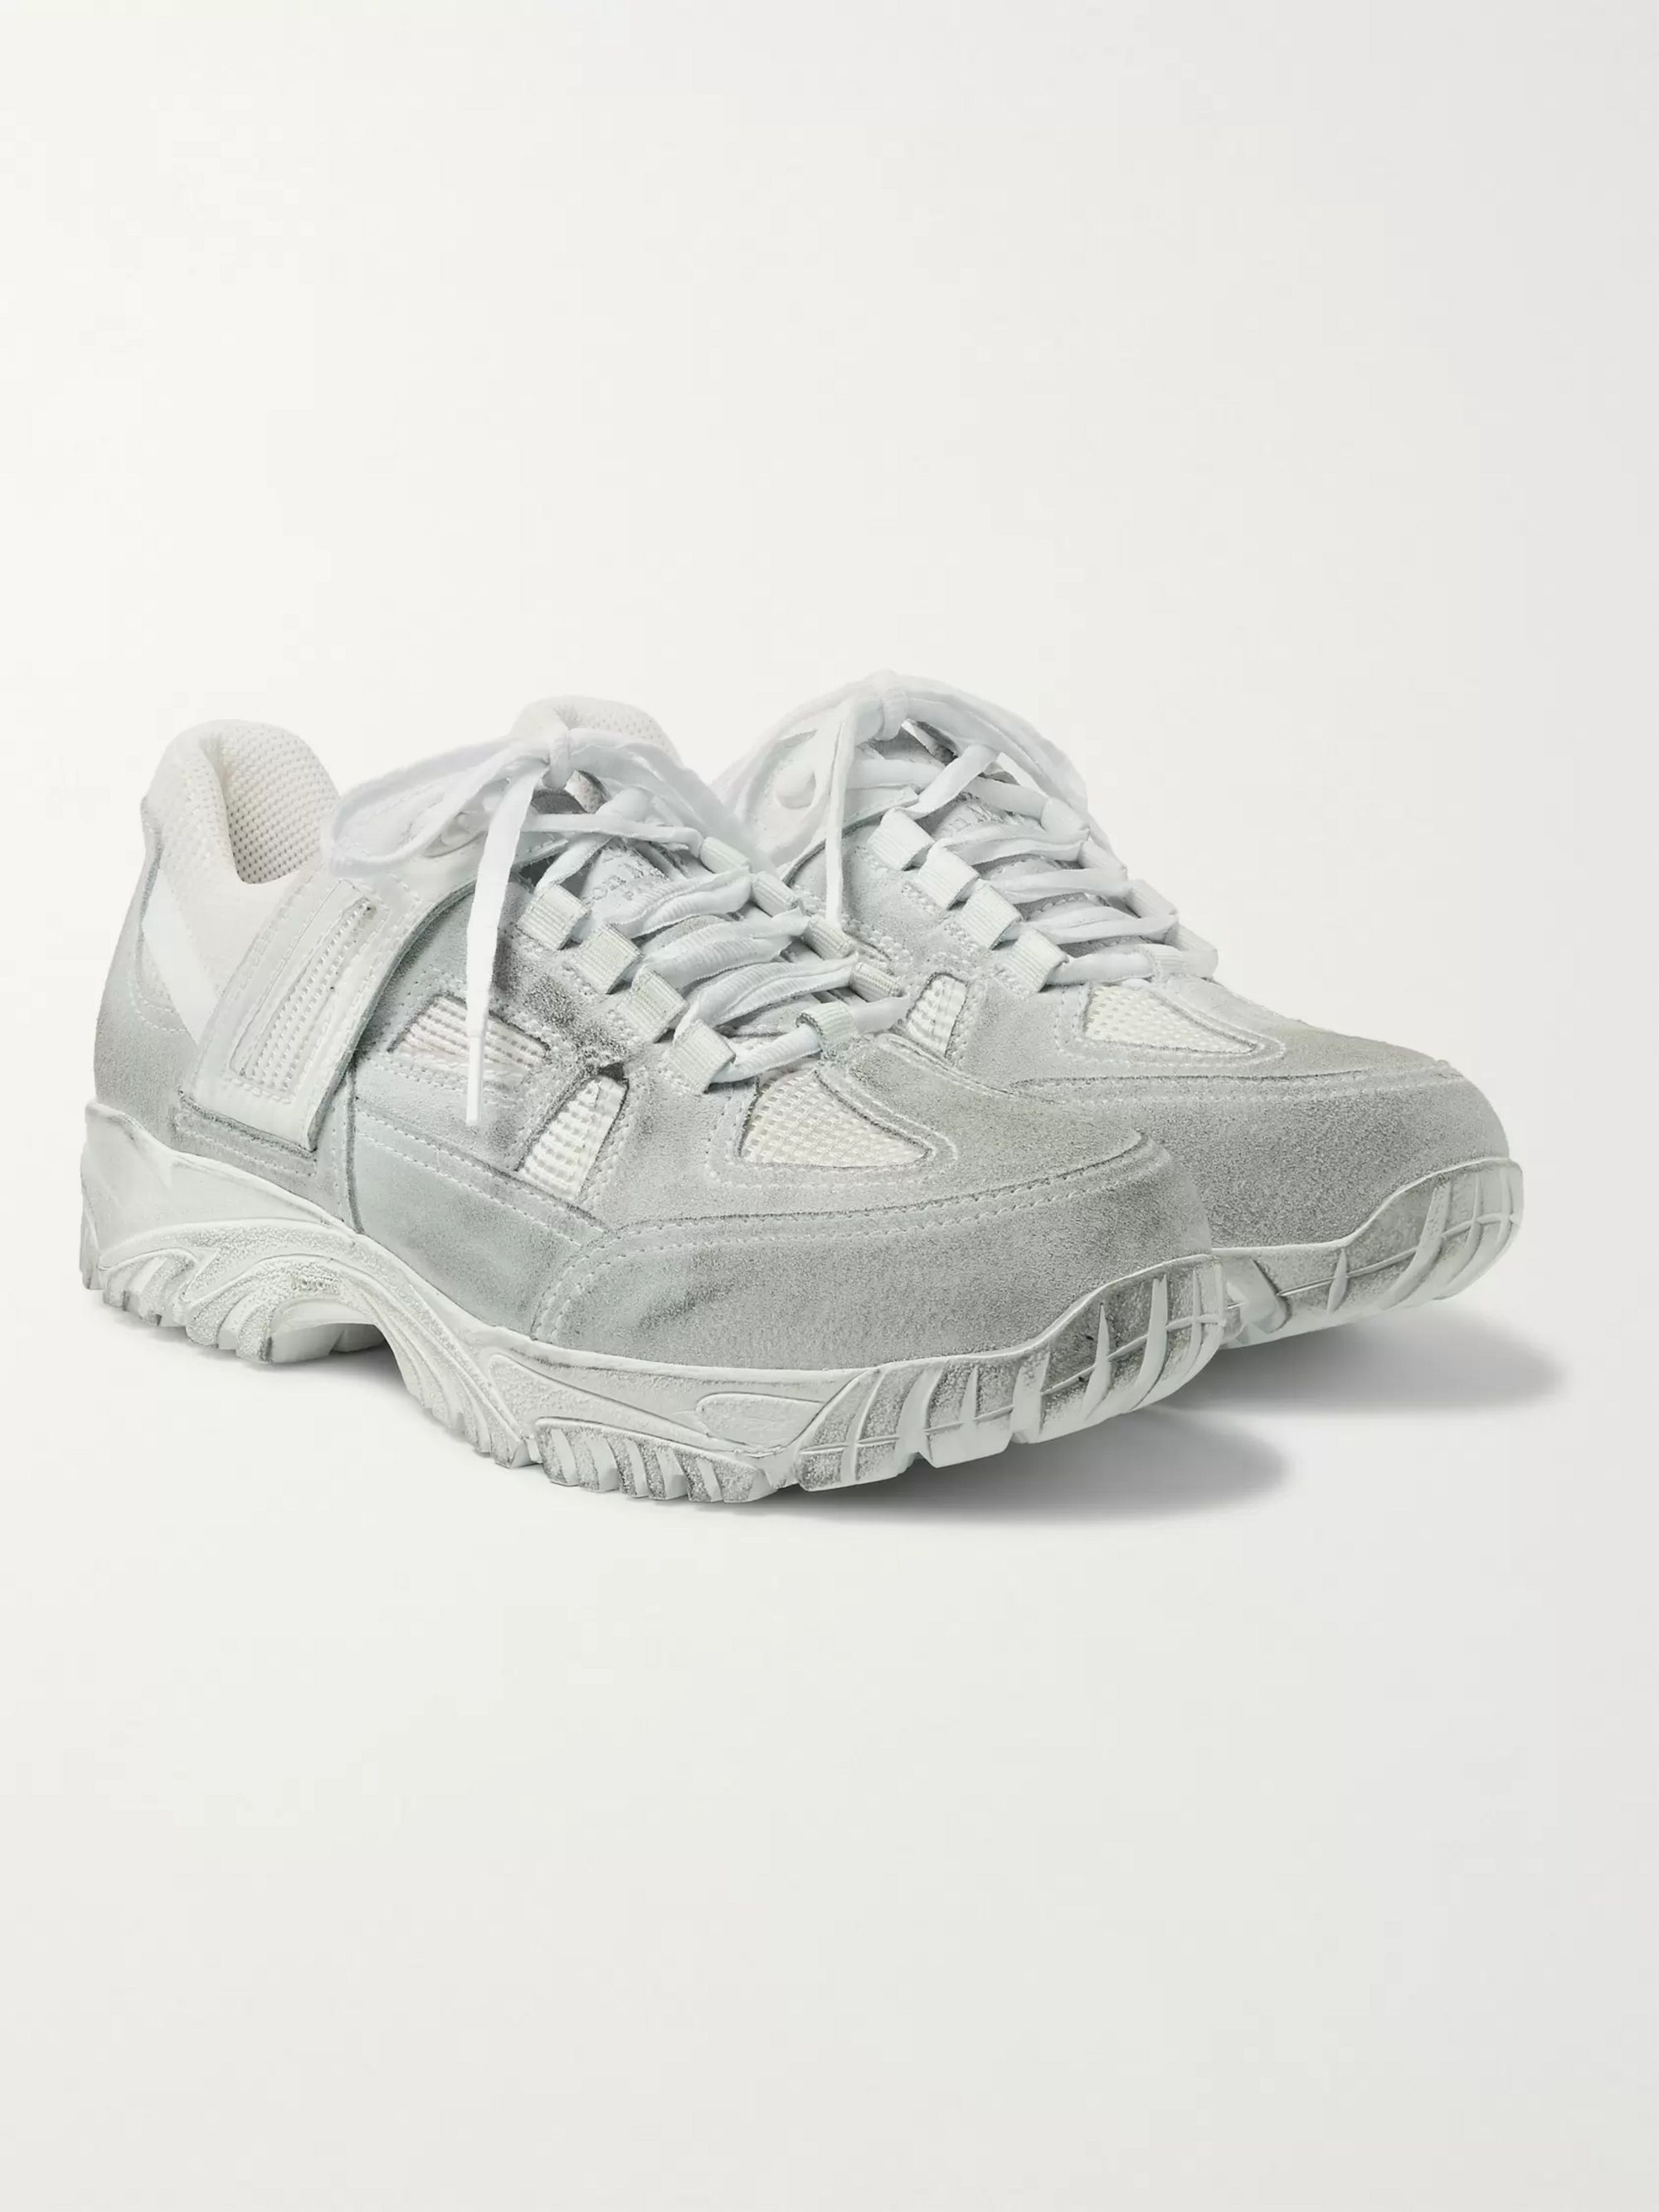 Maison Margiela Distressed Leather, Suede and Mesh Sneakers